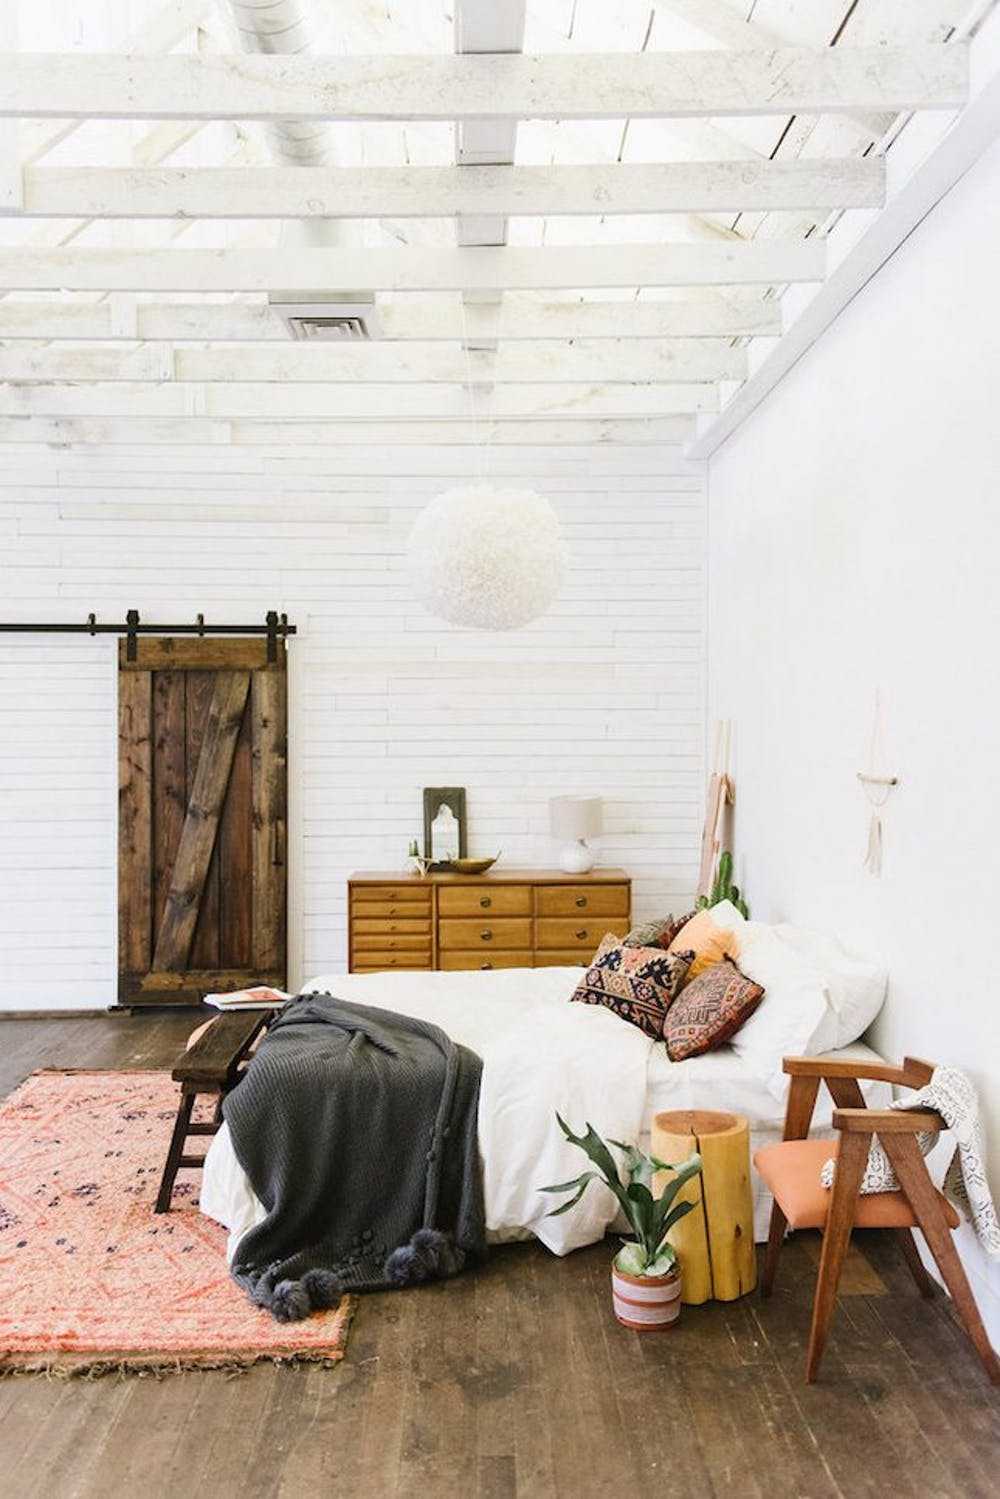 Inspiration for a mid-century southwestern bedroom look